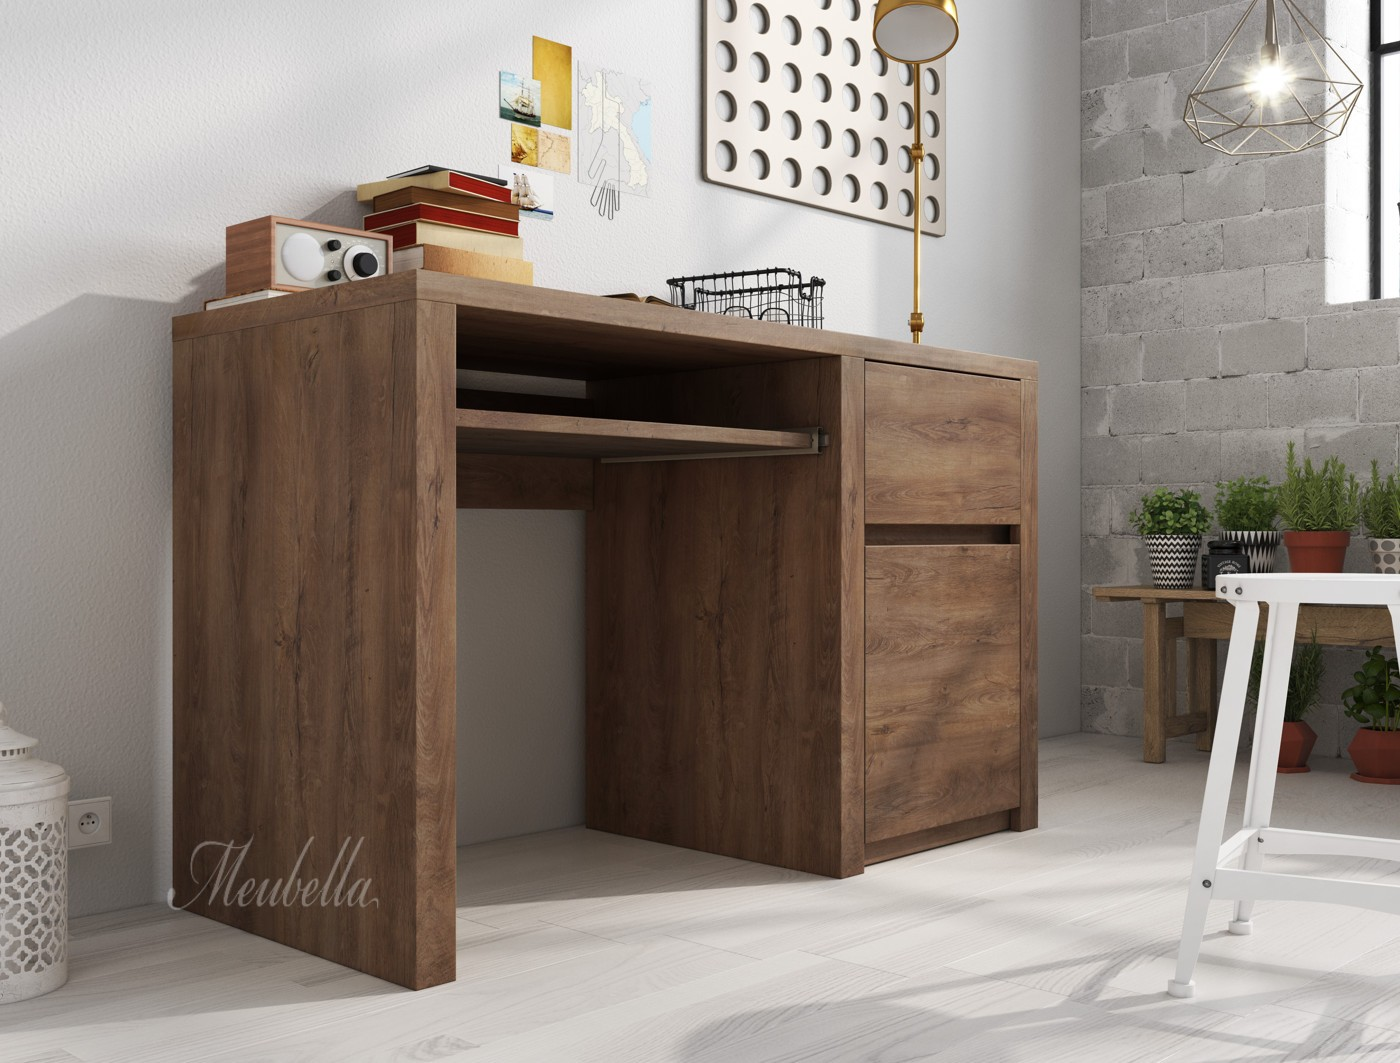 bureau monaco eiken meubella. Black Bedroom Furniture Sets. Home Design Ideas